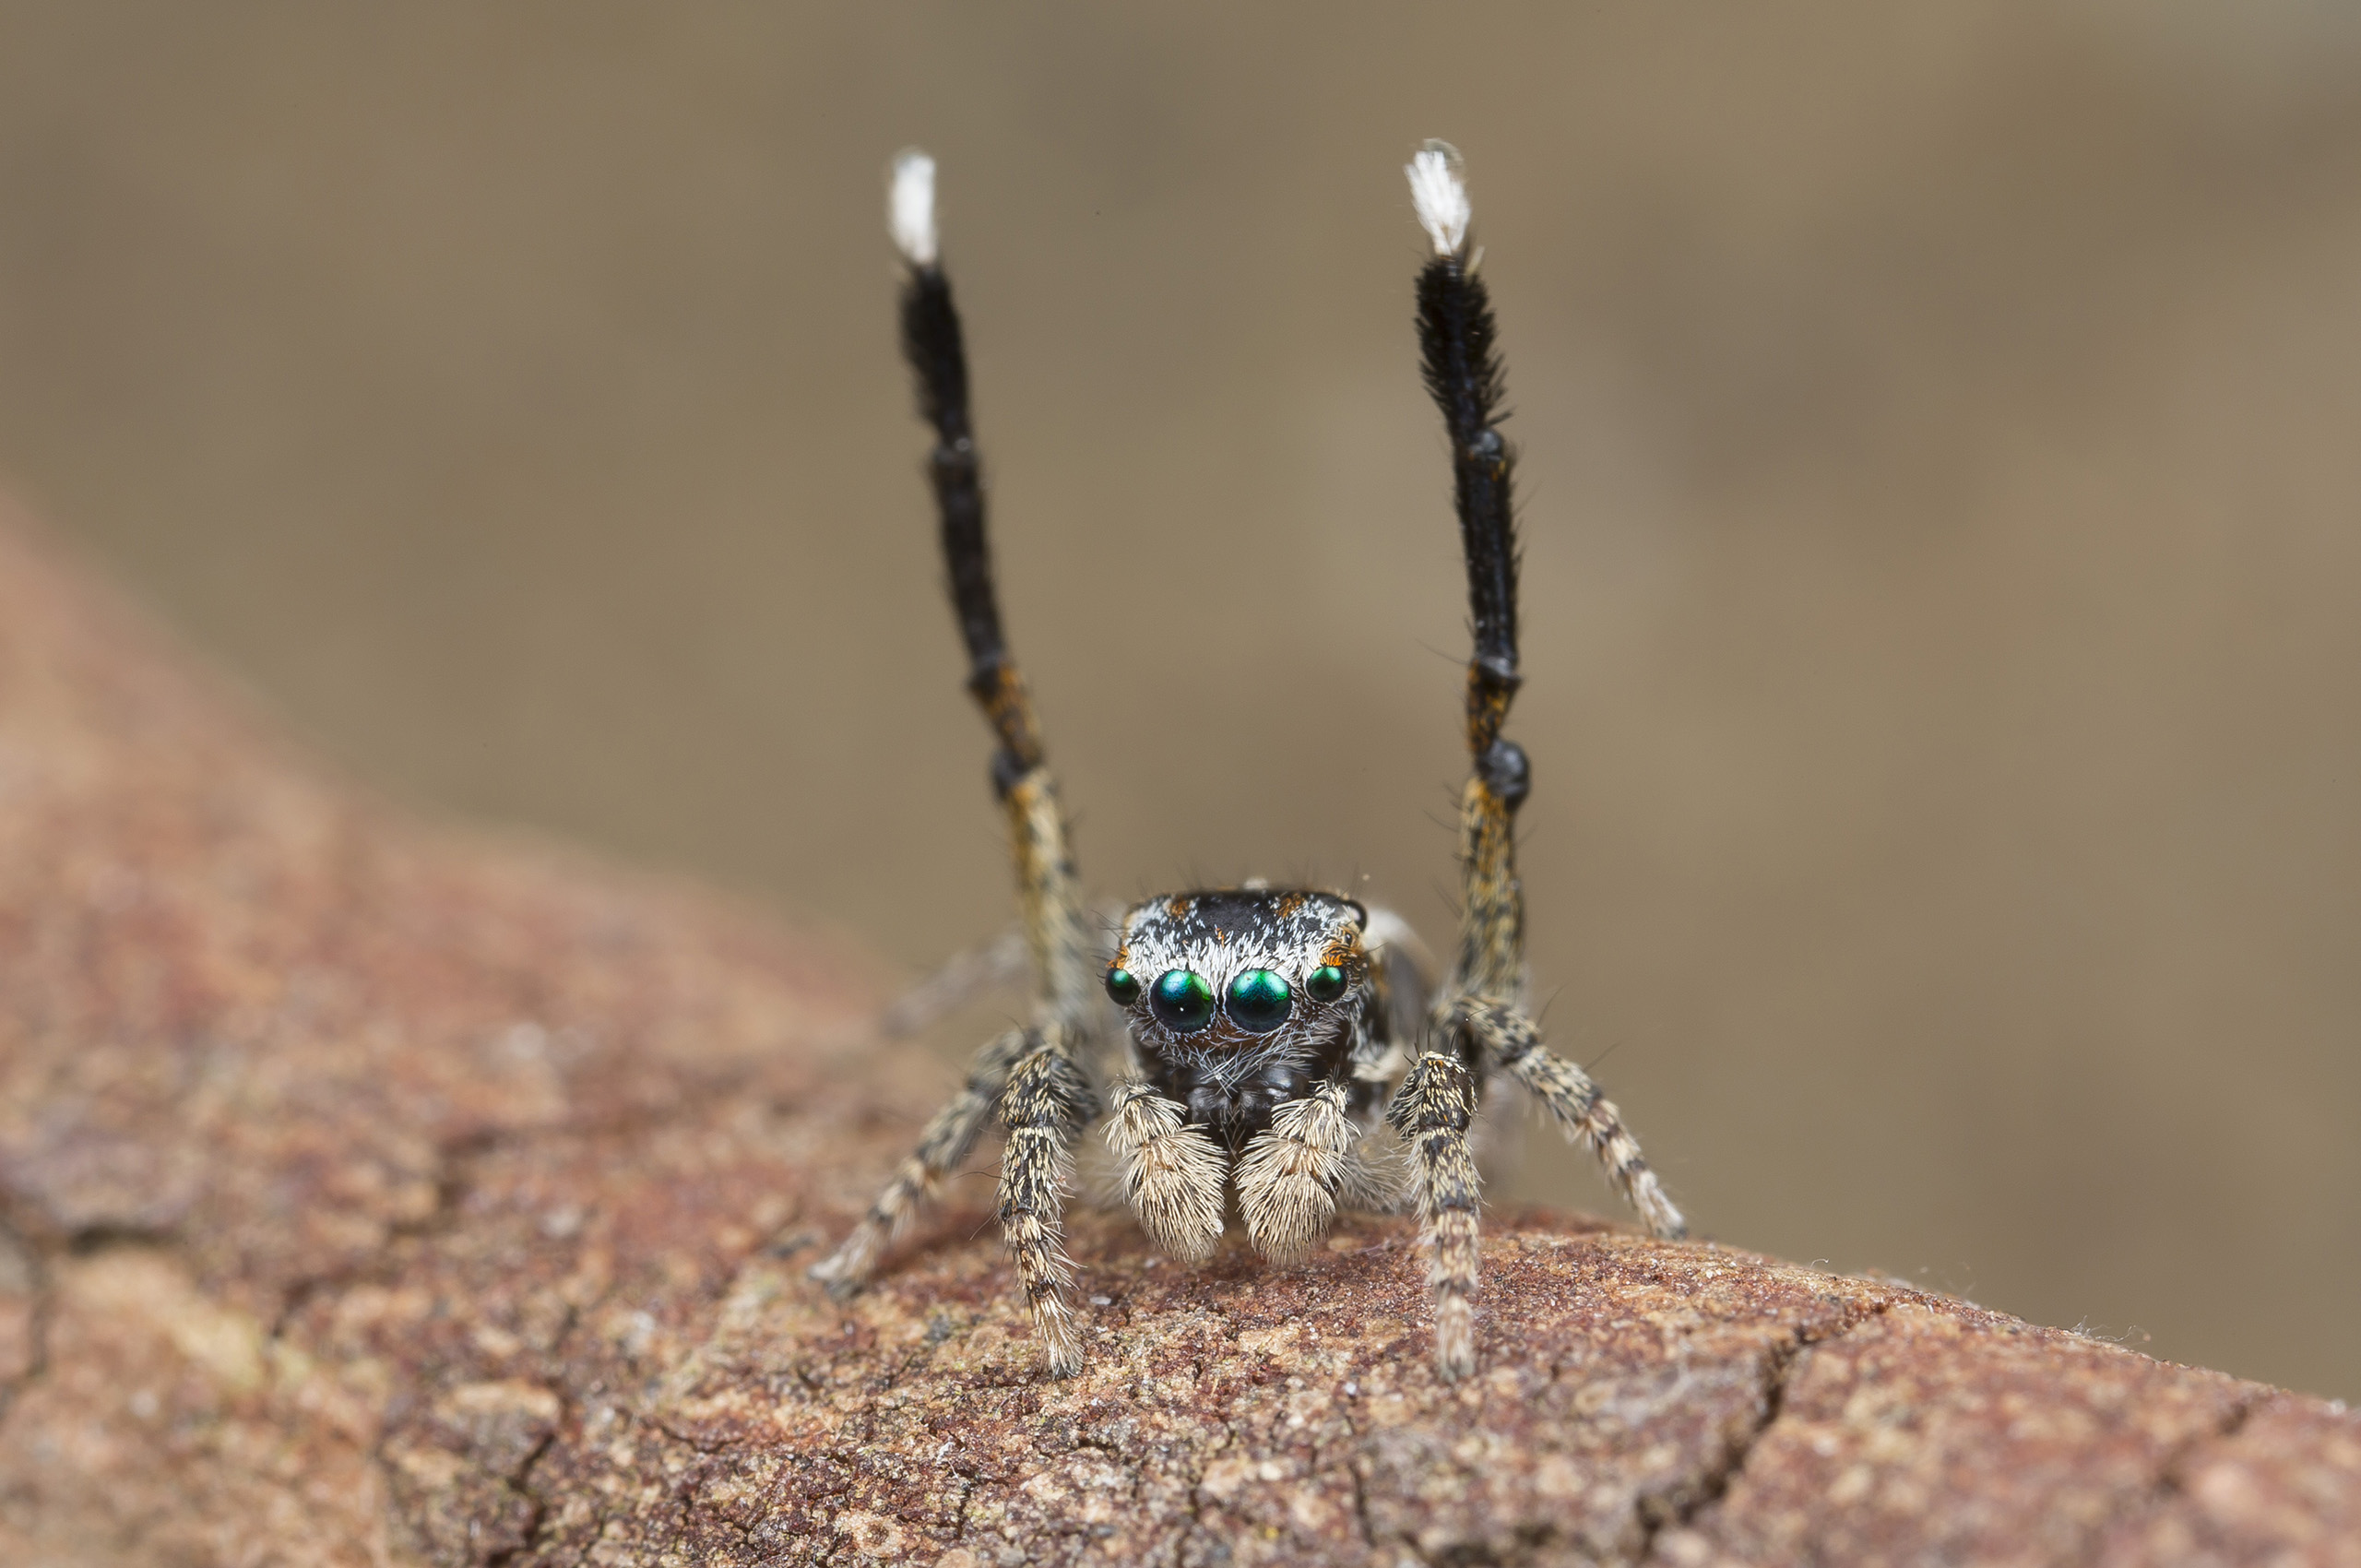 Maratus Tessellatus relies on leg work, as opposed to a flashy abdomen, for its courtship display. Its legs move so fast that in a normal 25 fps video clip, they appear only as a blur.